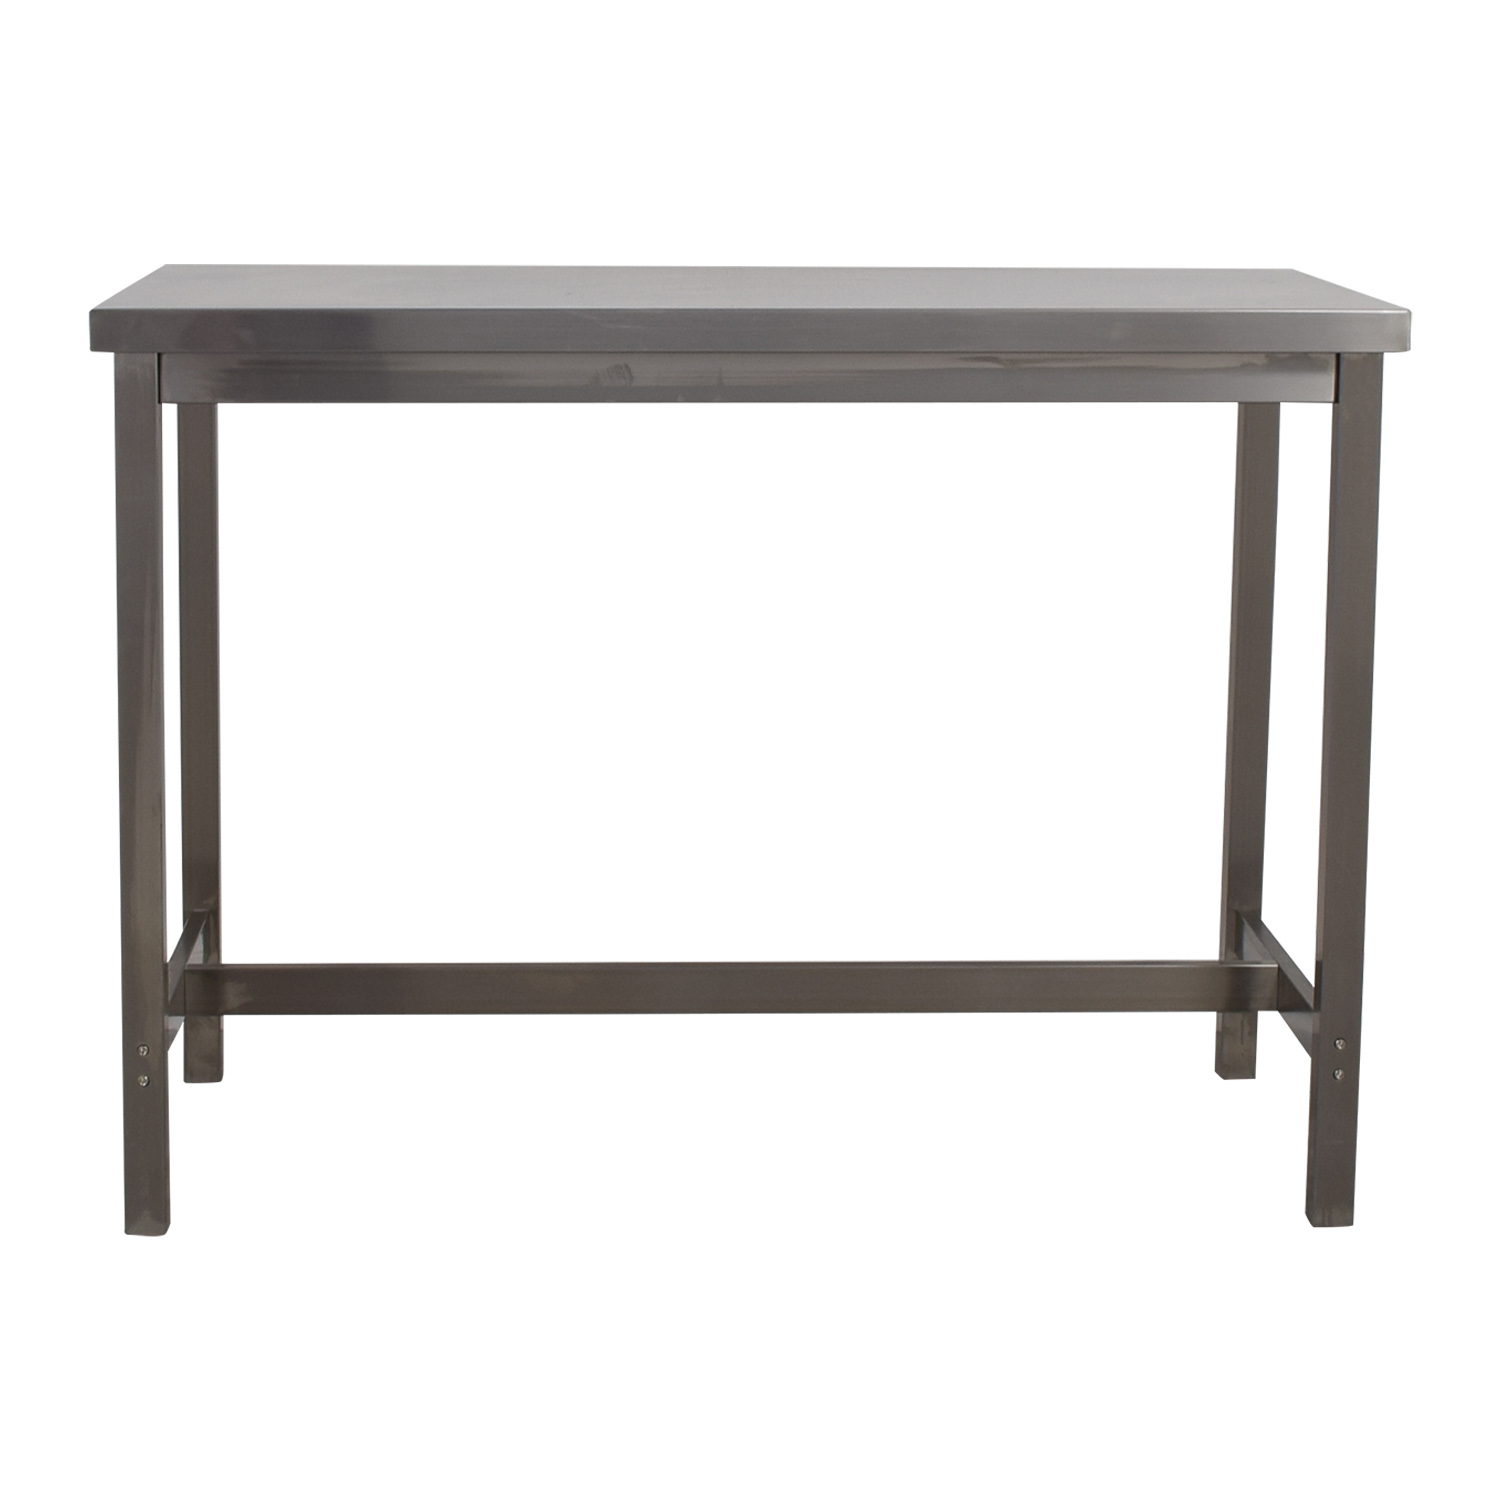 furniture round acrylic side table long end metal tray coffee glass accent wood decorative book black iron narrow nesting tables wicker grey silver slide under sofa that the couch